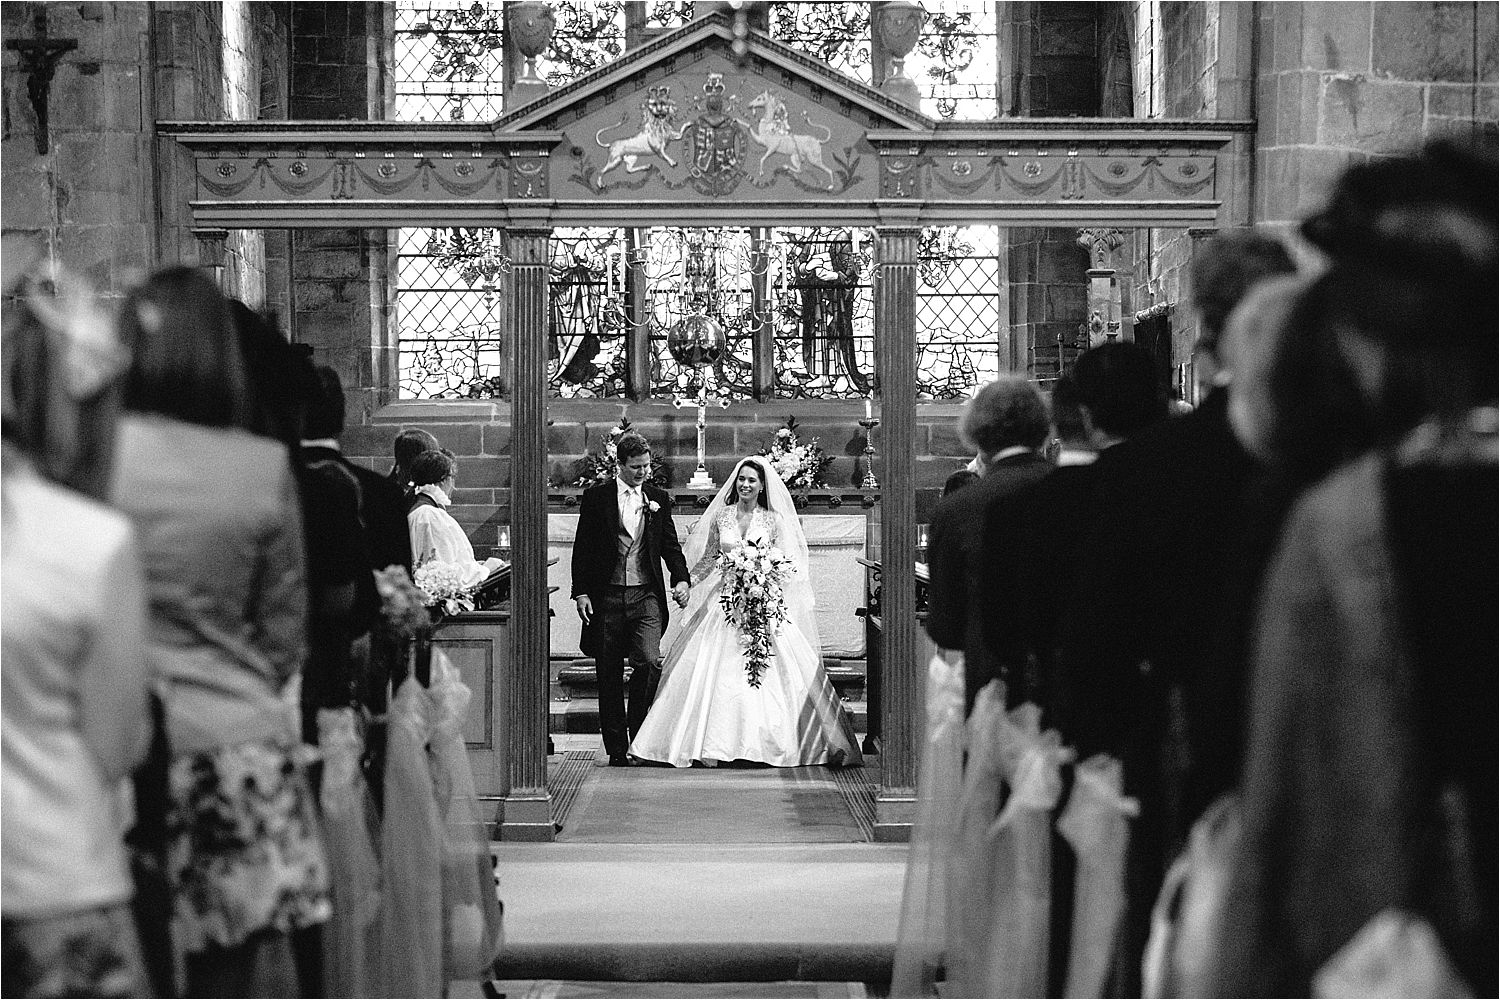 Bride and groom walking down the aisle after their Cheshire wedding in Prestbury